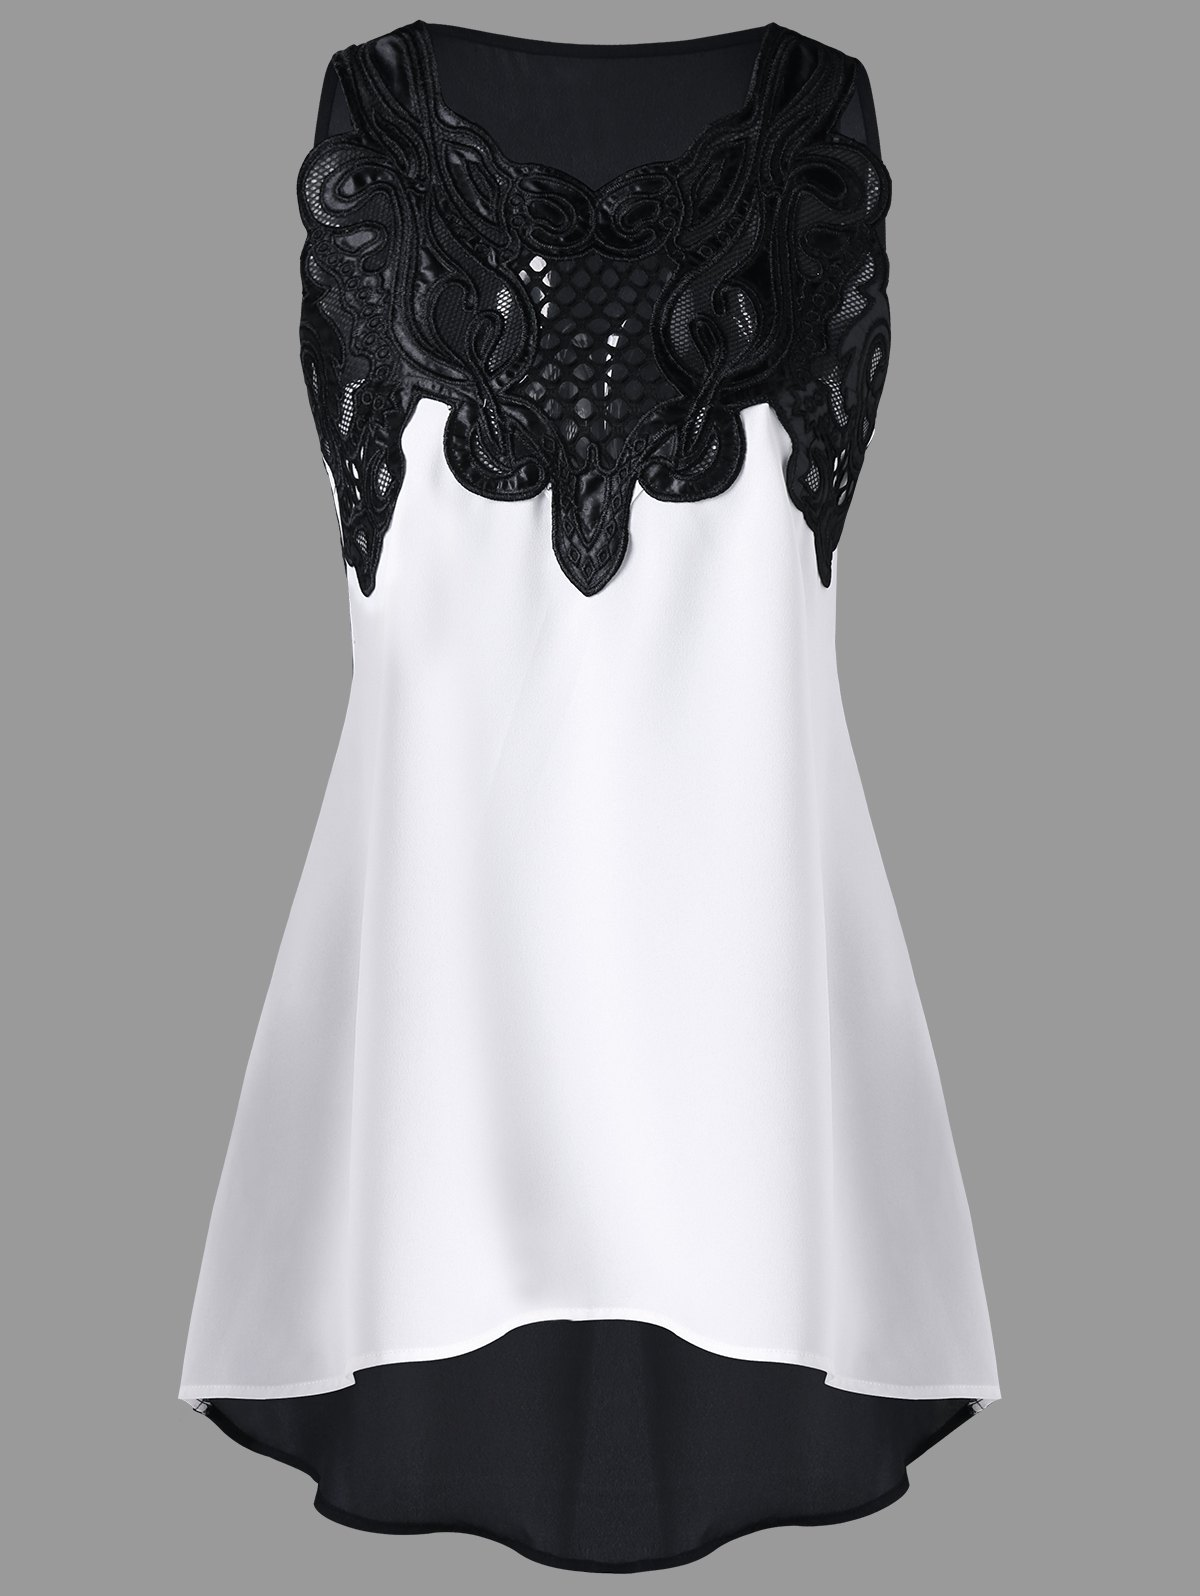 ca881ed1de 61% OFF   2019 Lace Embroidered High-low Sleeveless Top